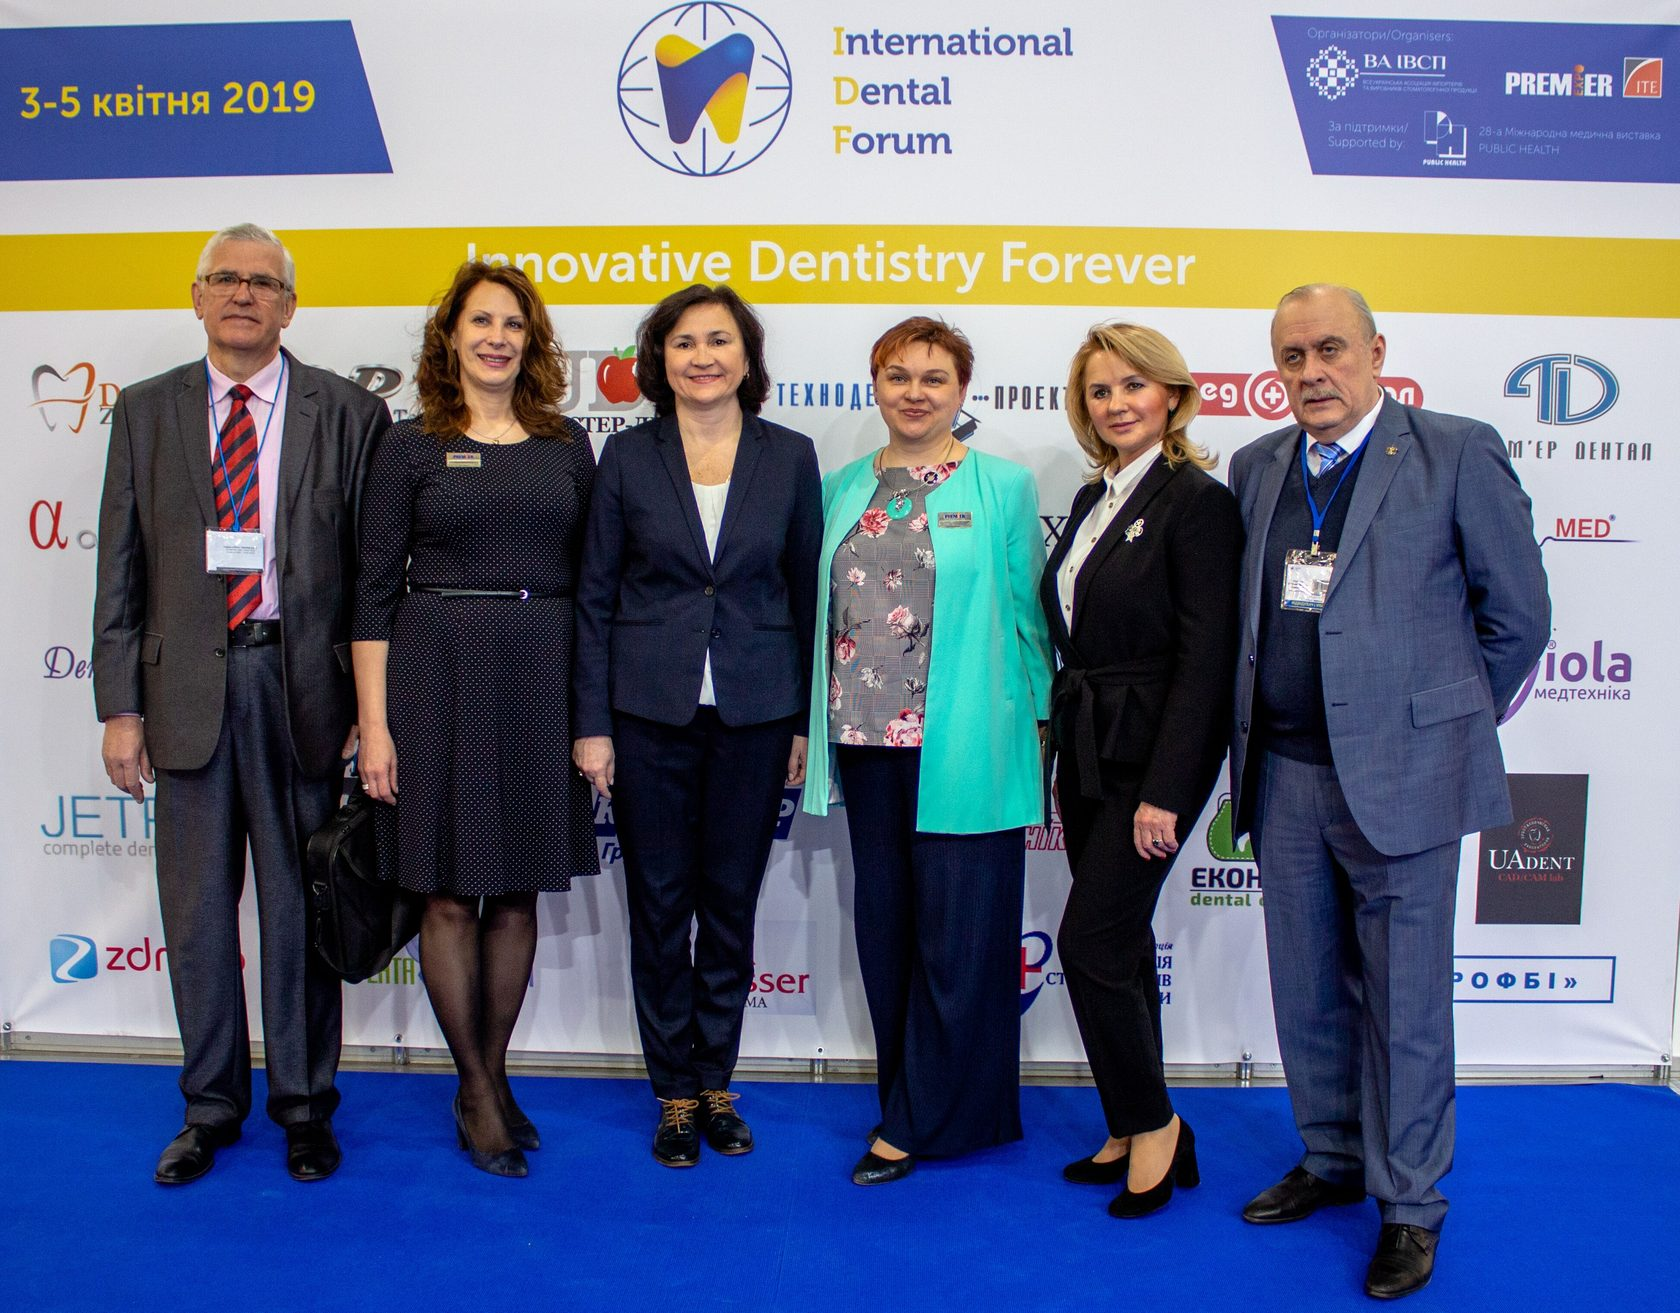 International Dental Forum 2019